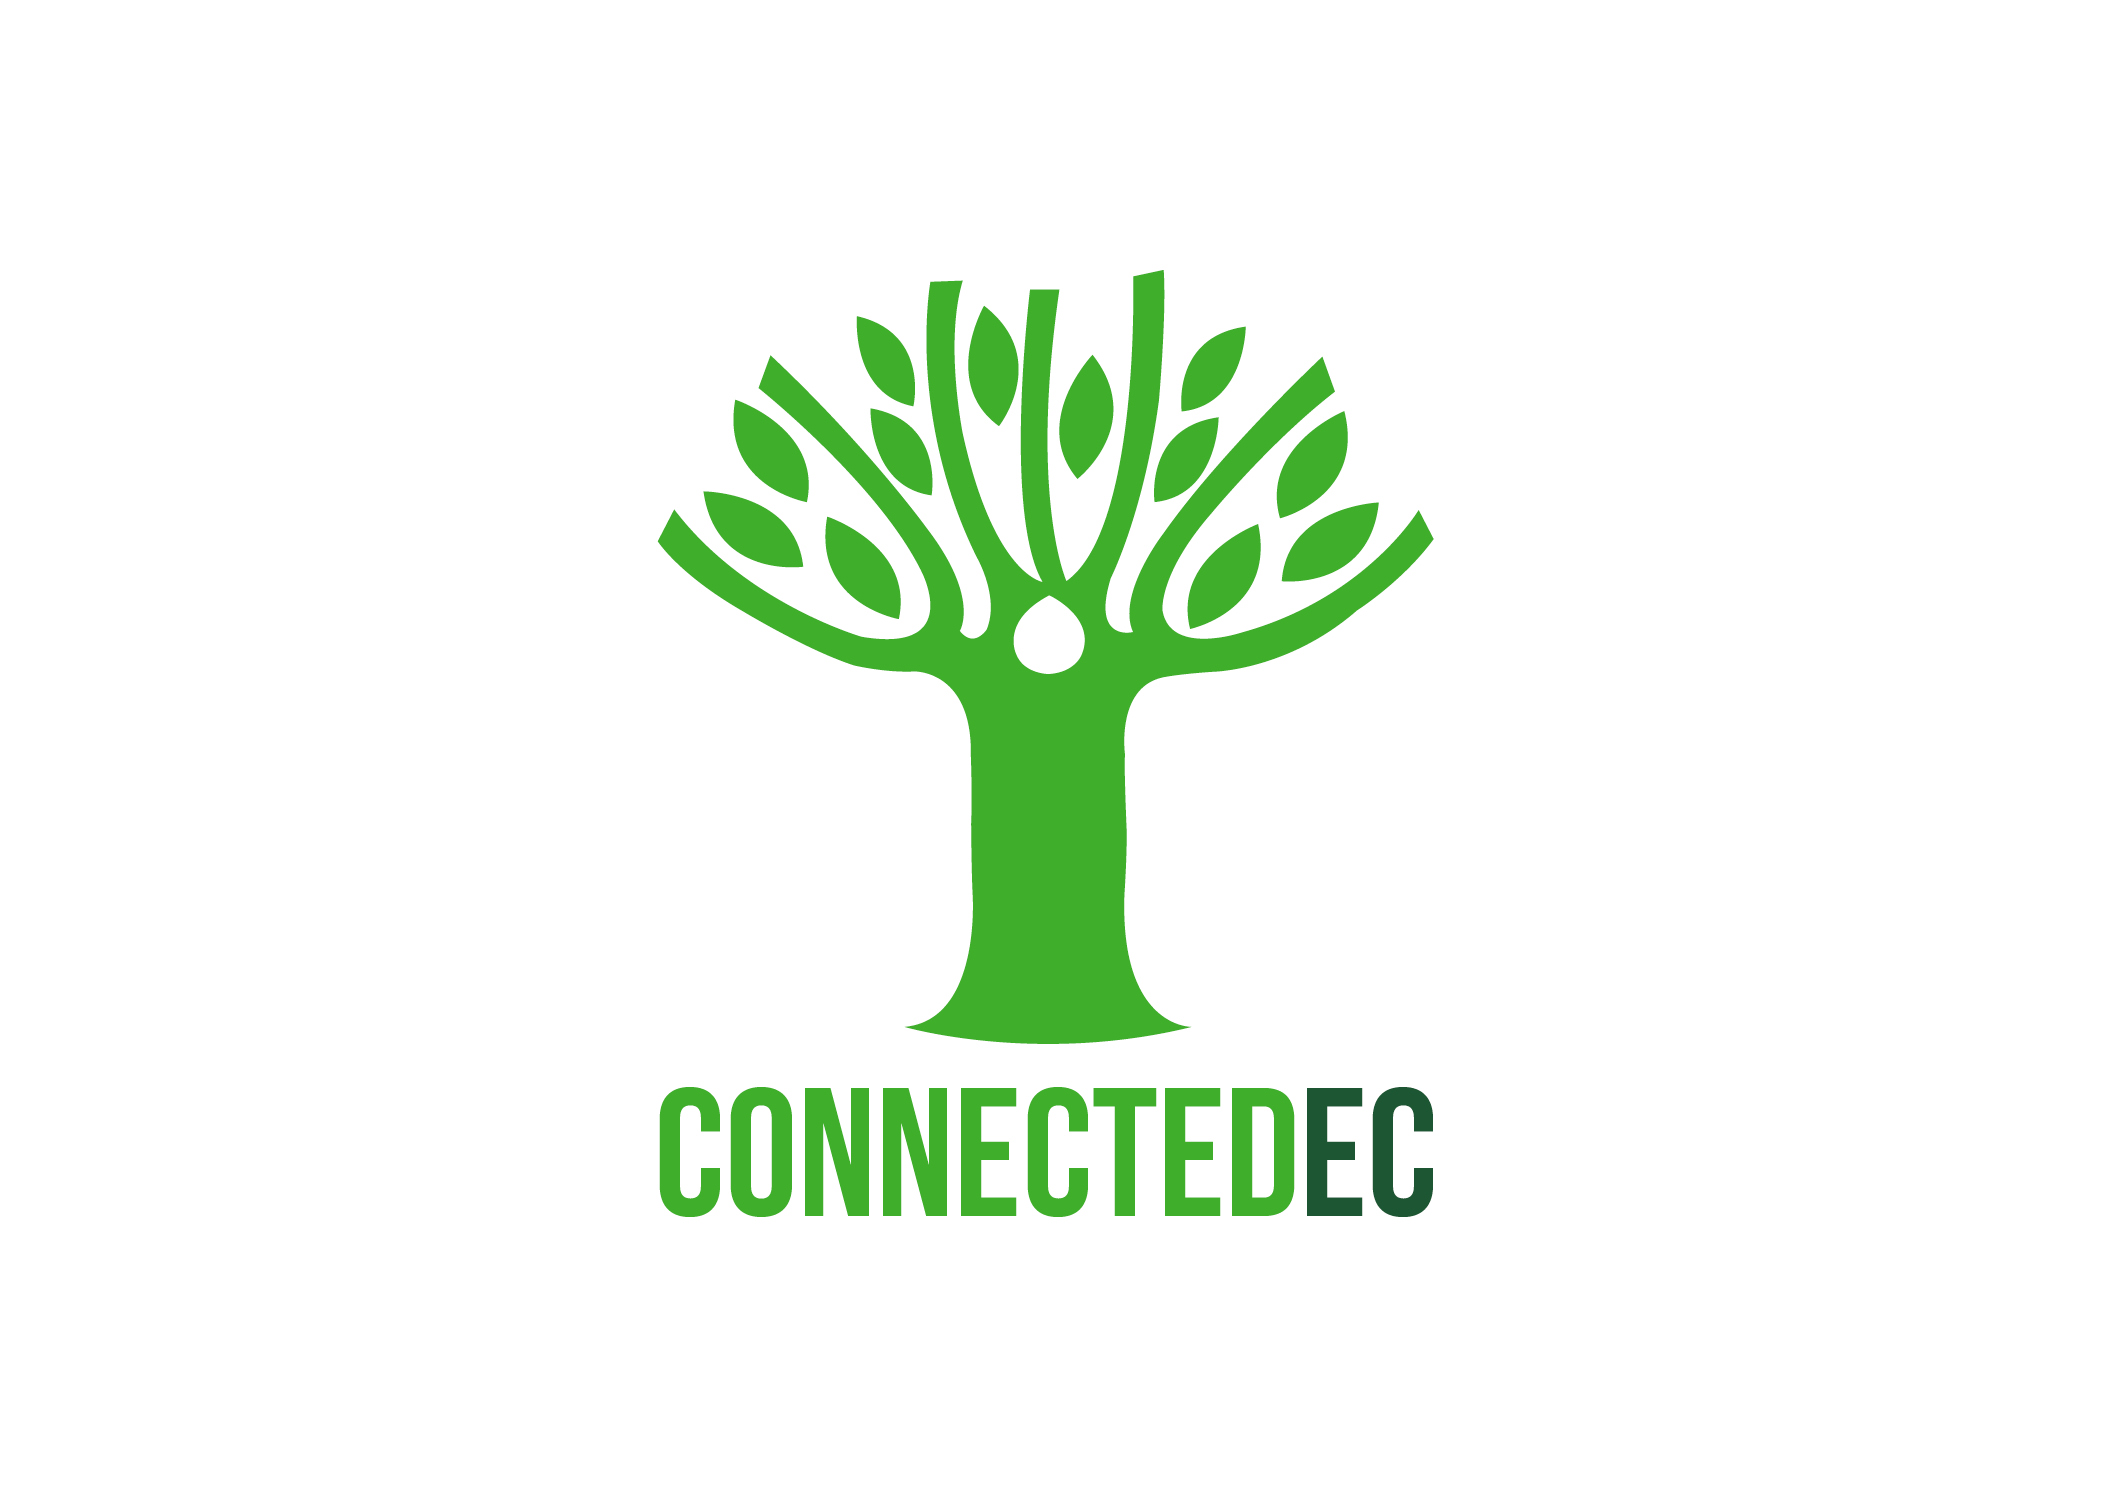 ConnectedEC